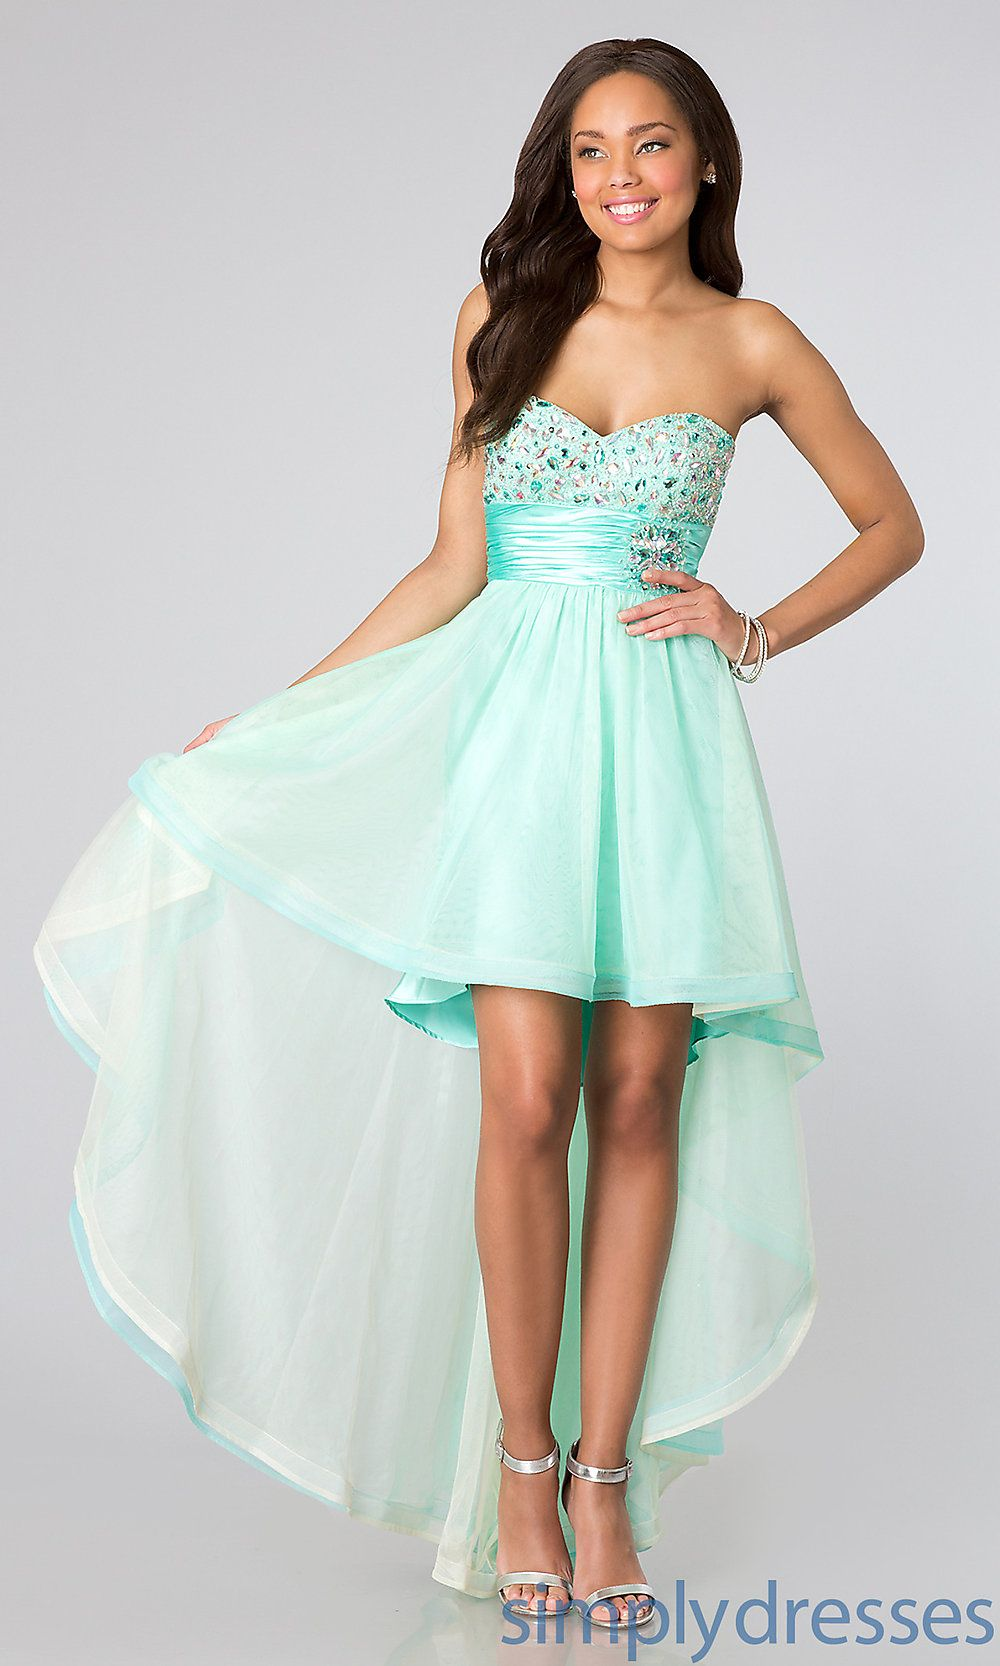 Bee Darlin Strapless High Low Party Dress -Simply Dresses | High ...